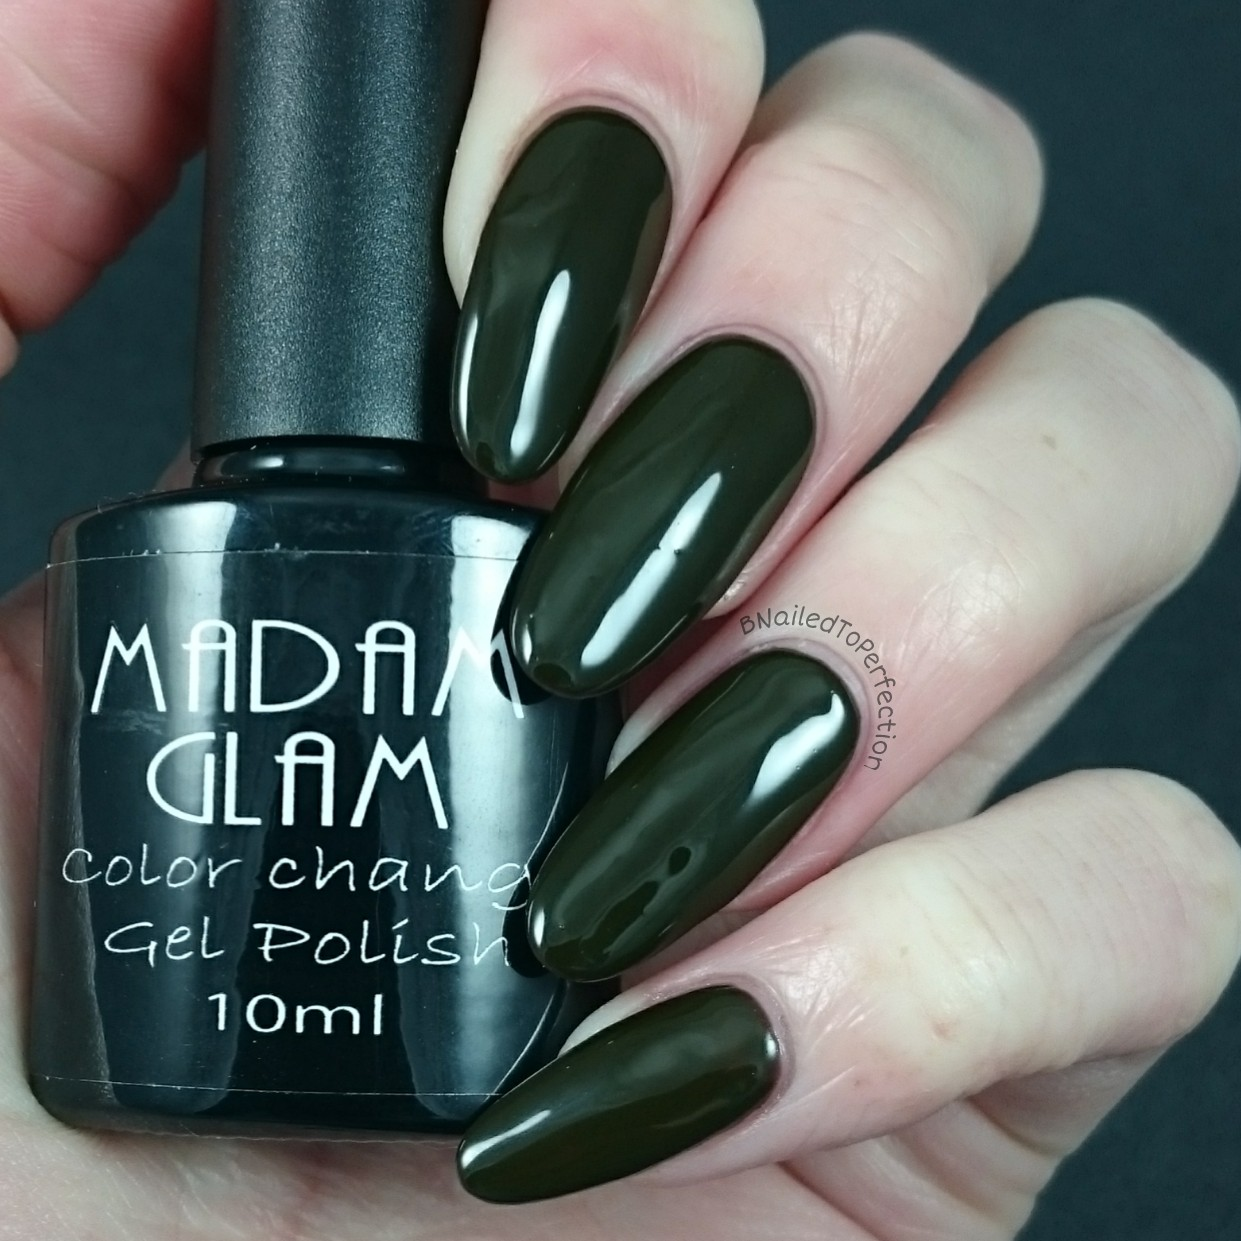 B Nailed To Perfection: Madam Glam Swatches and Review